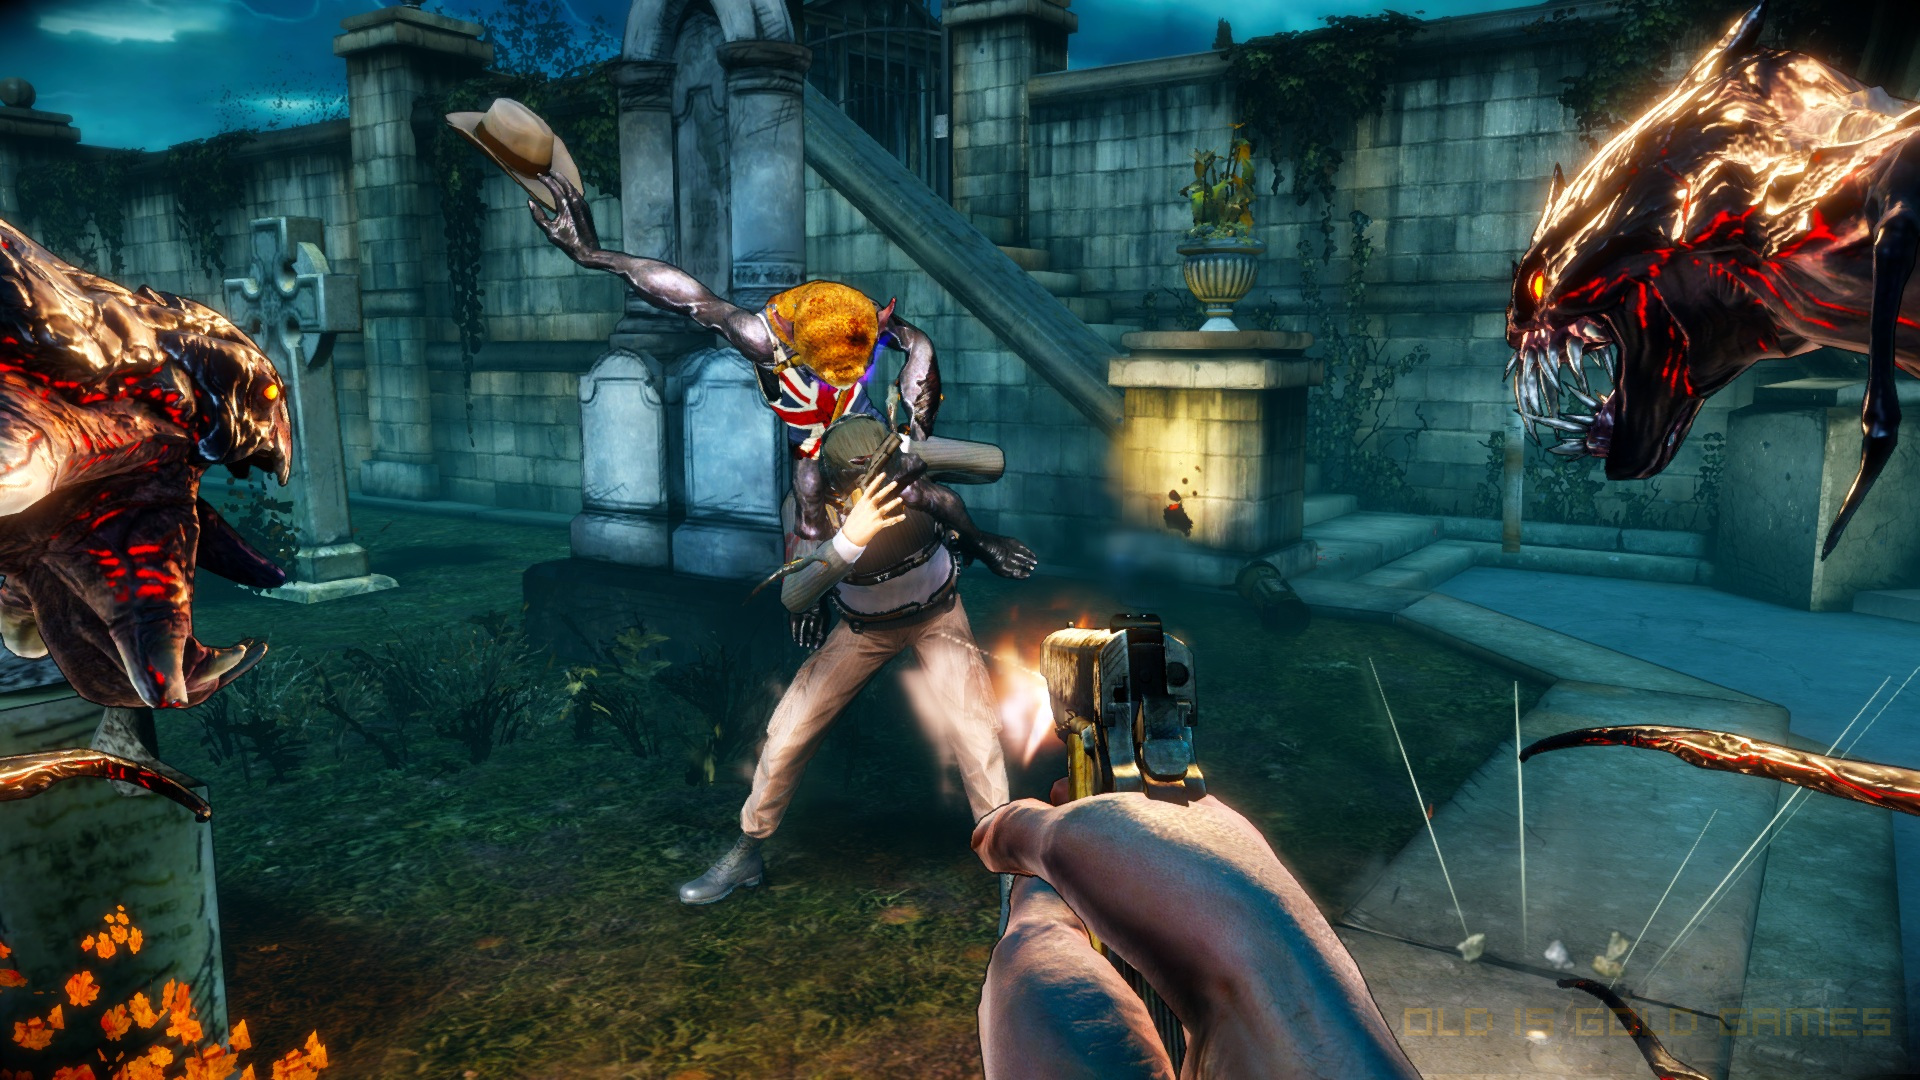 The Darkness 2 Download For Free